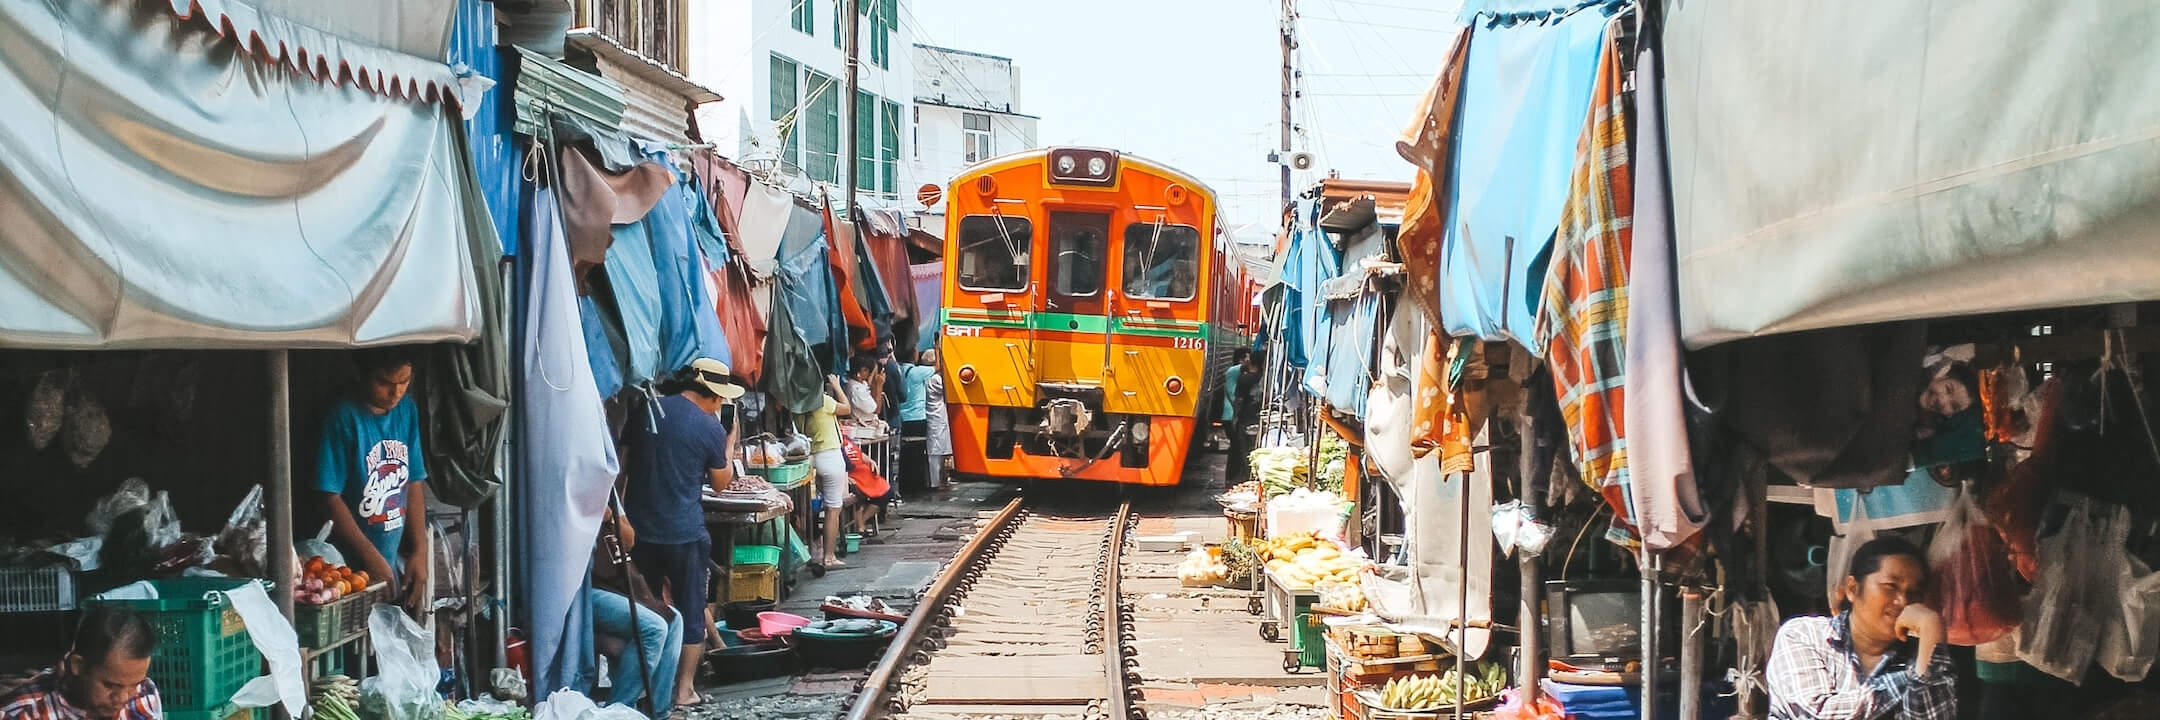 https://gody.vn/blog/hanguyen23413/post/maeklong-train-market-check-in-cam-giac-manh-khu-cho-duong-ray-o-thai-lan-3941